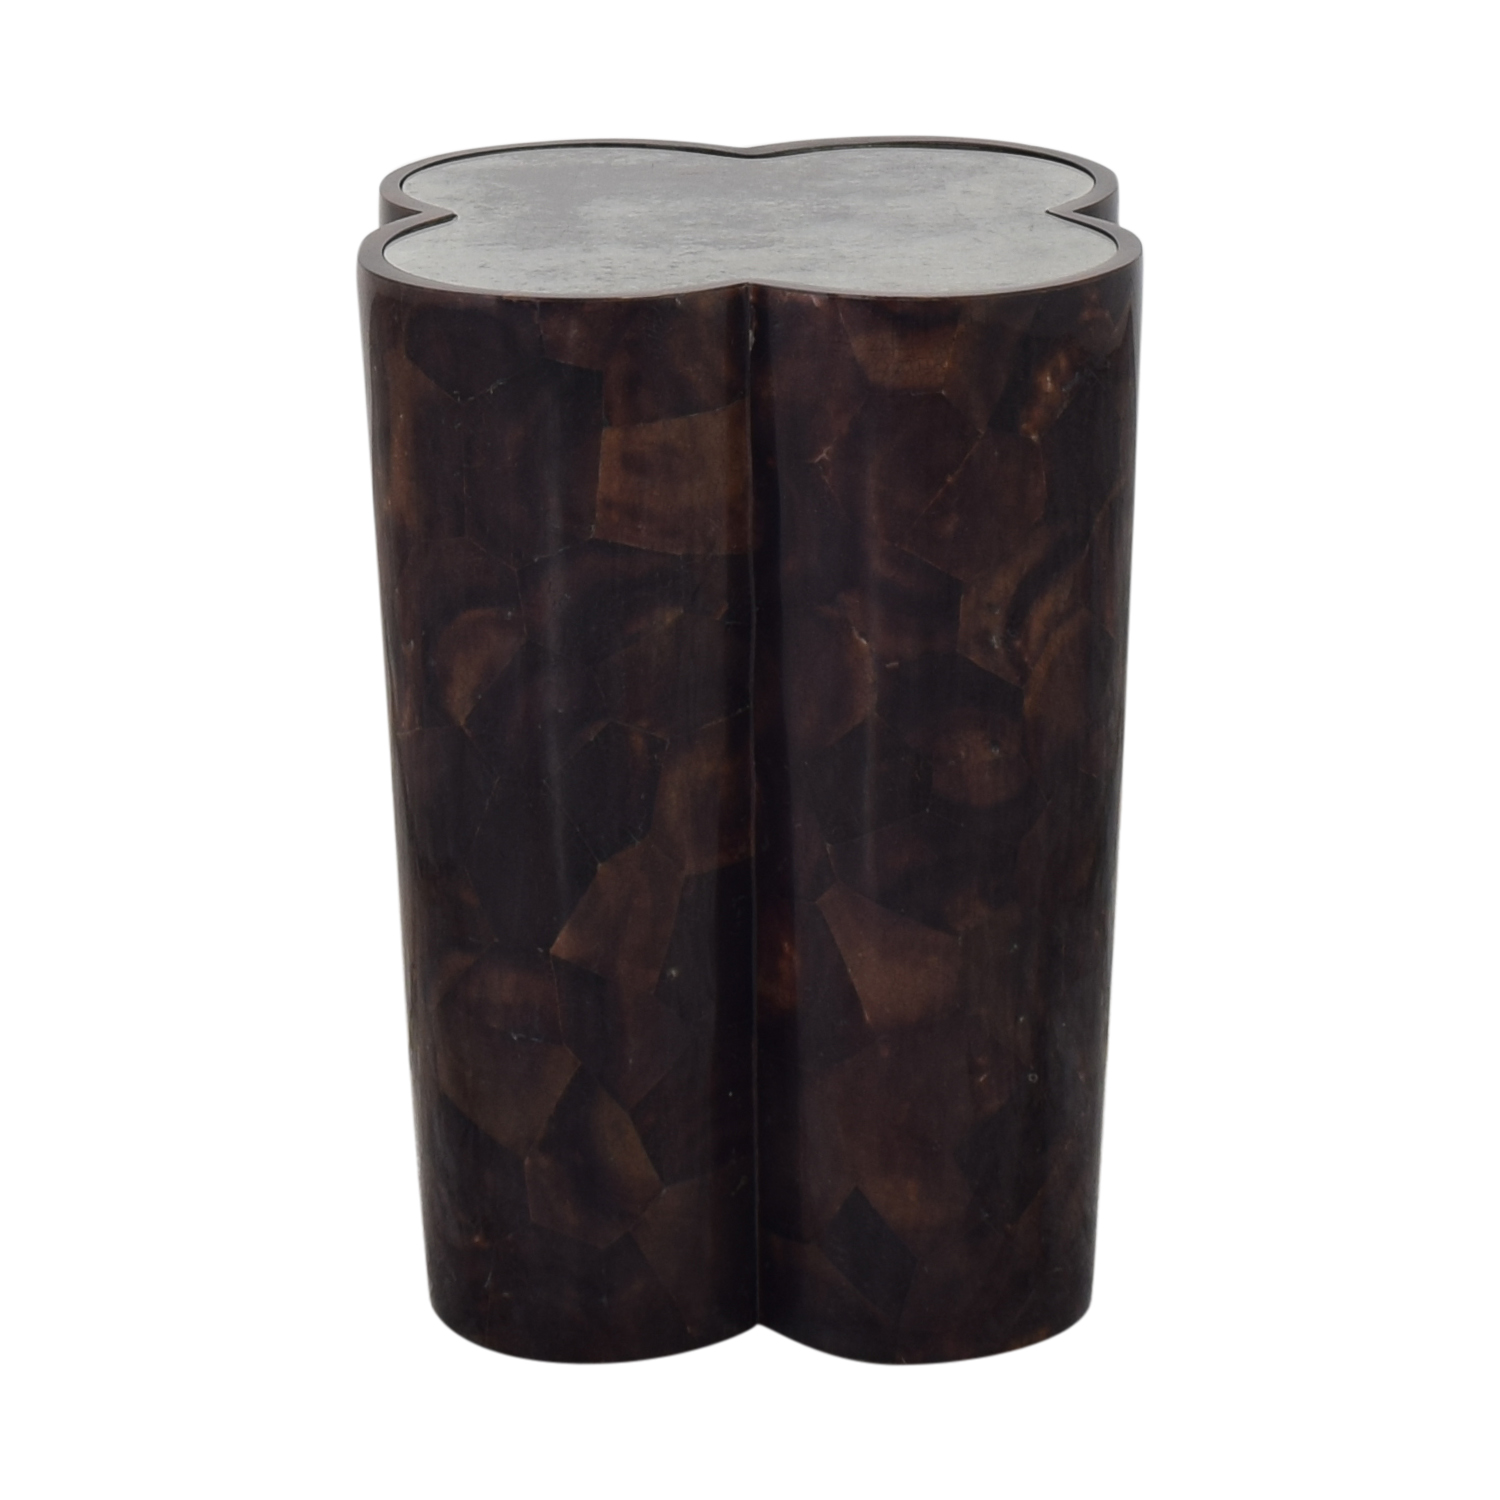 Penshell Side Table dark brown